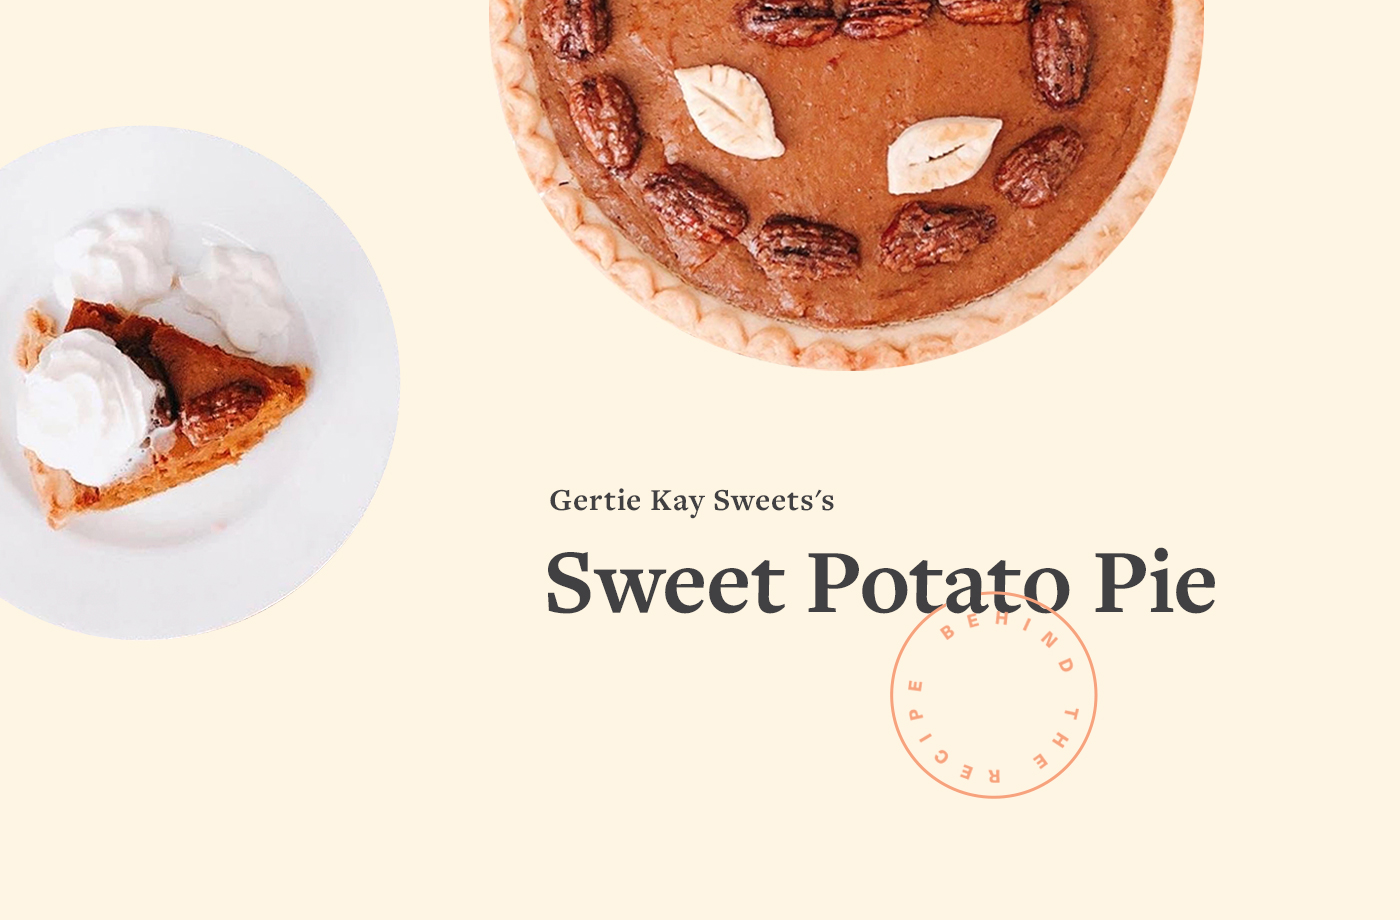 Thumbnail for This Delicious Sweet Potato Pie Recipe Has Been Passed Down for Generations